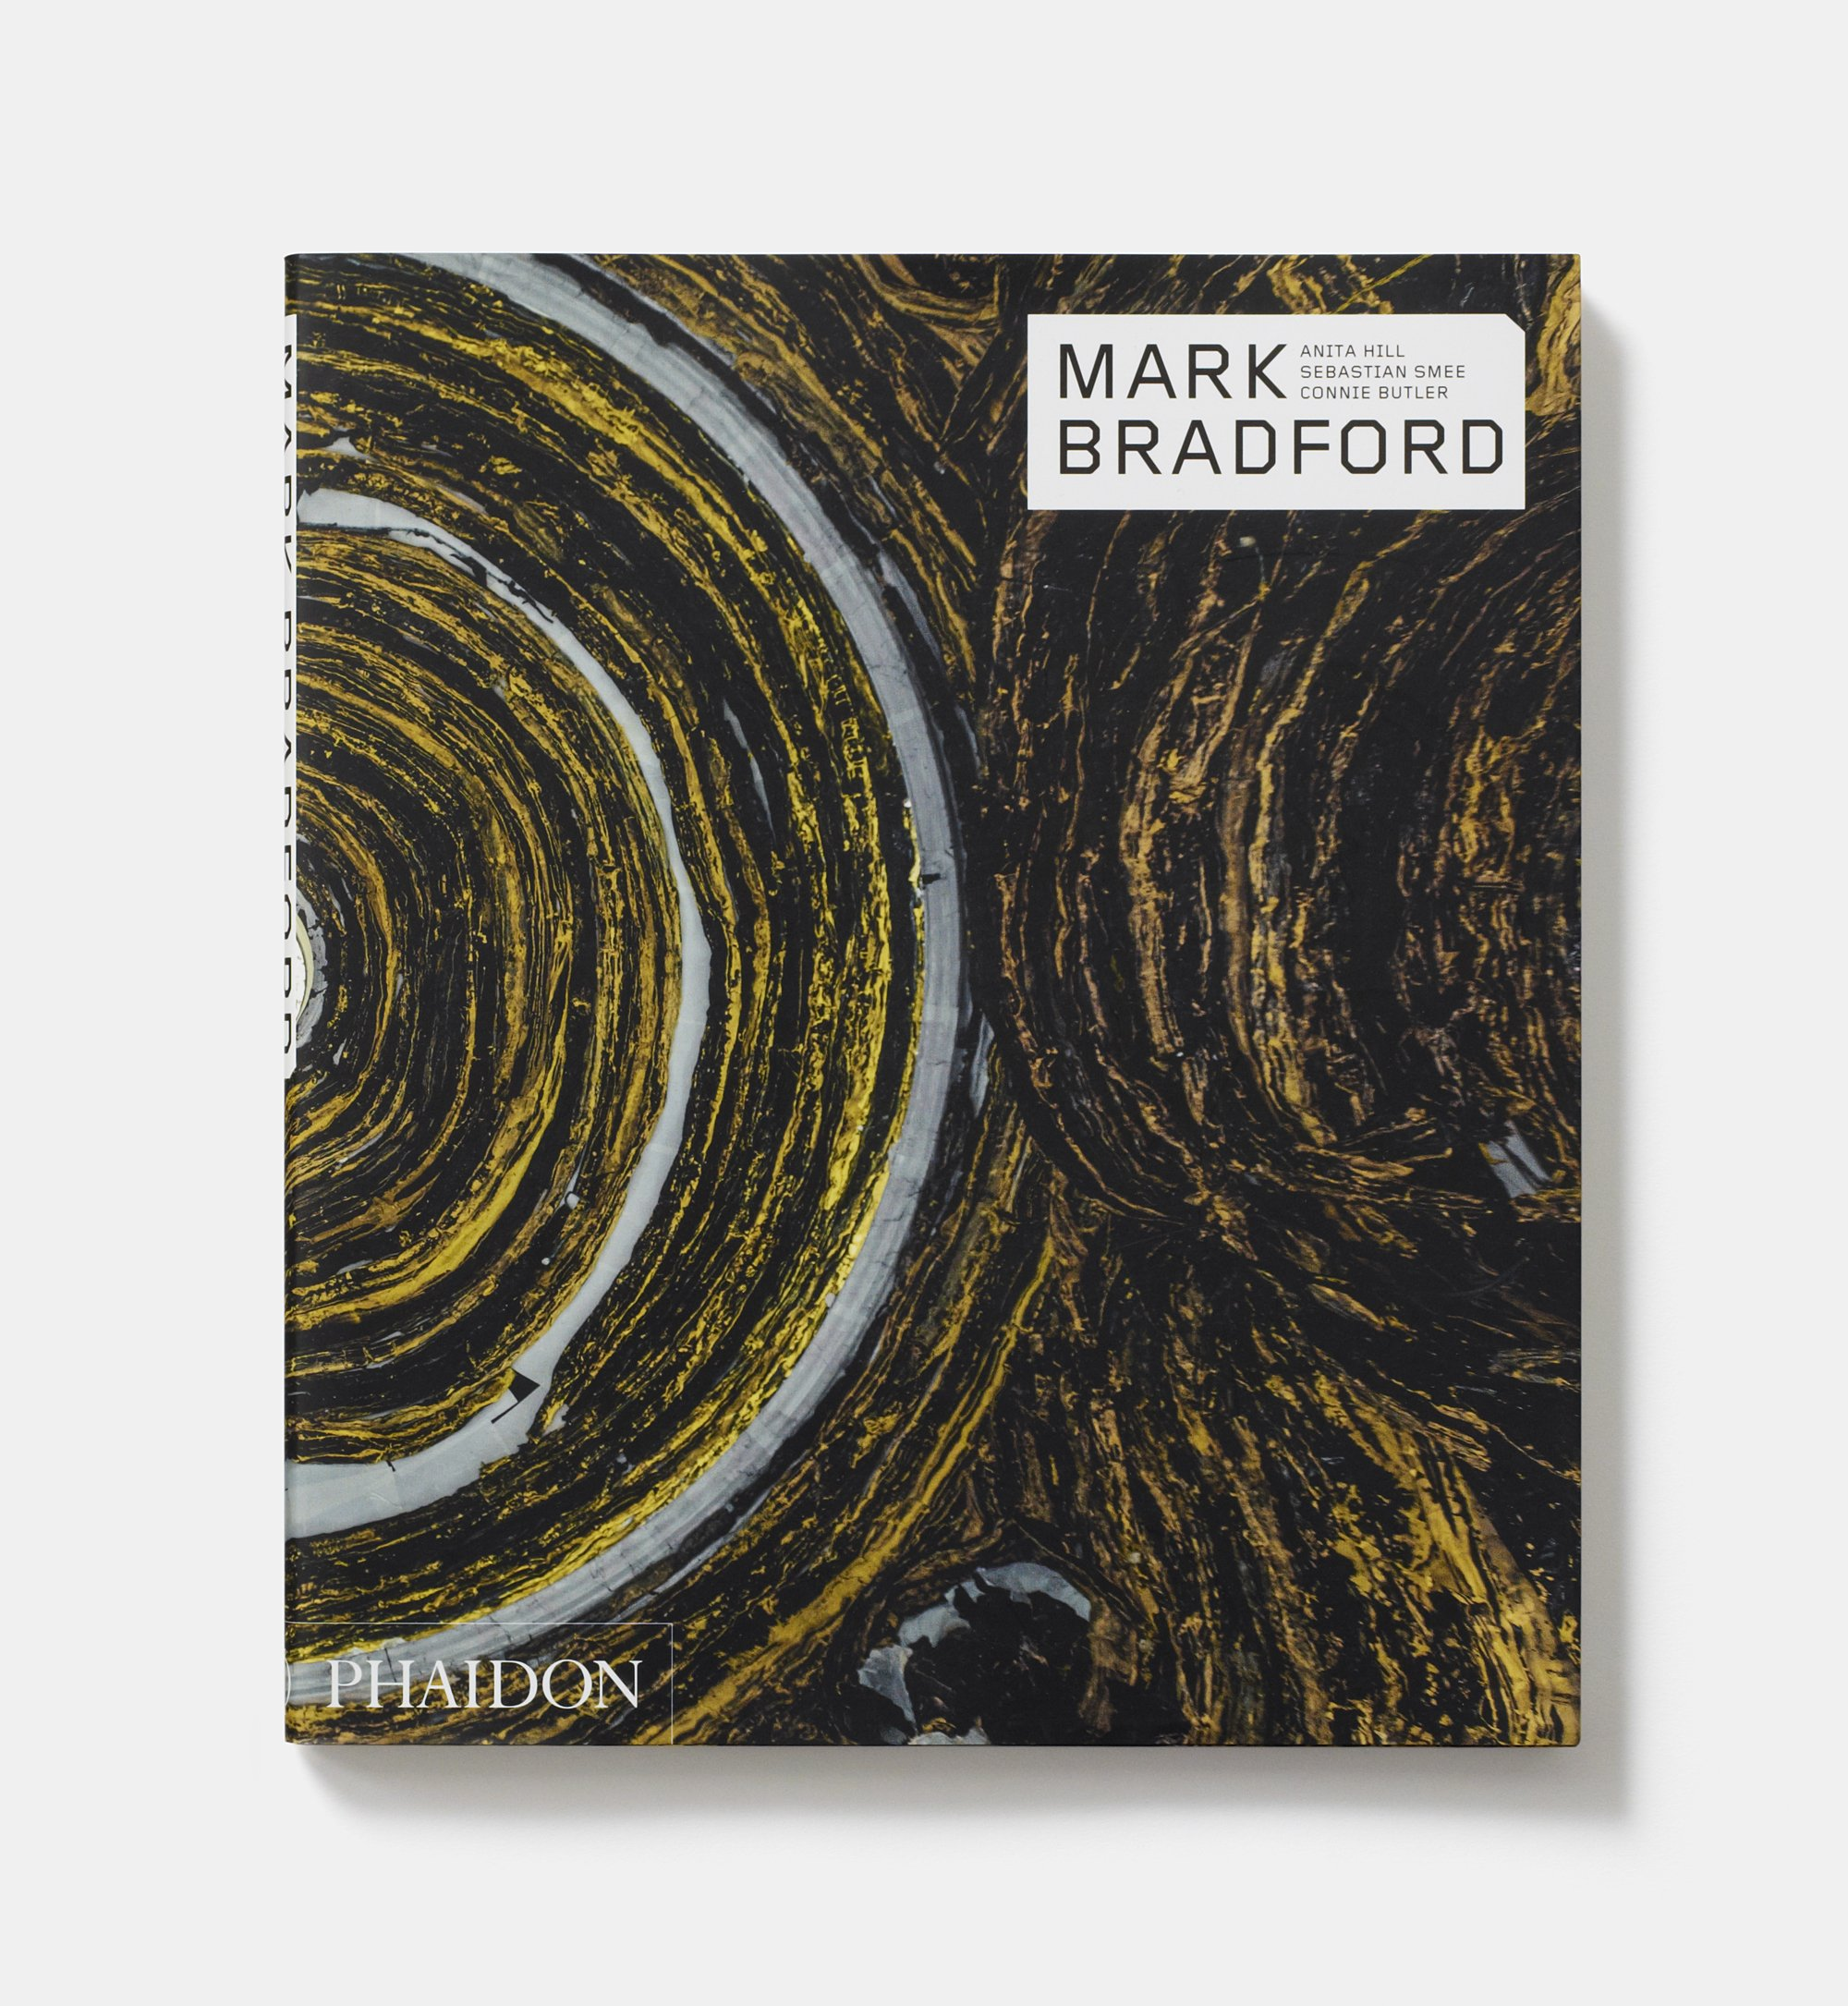 mark bradford phaidon contemporary artist series